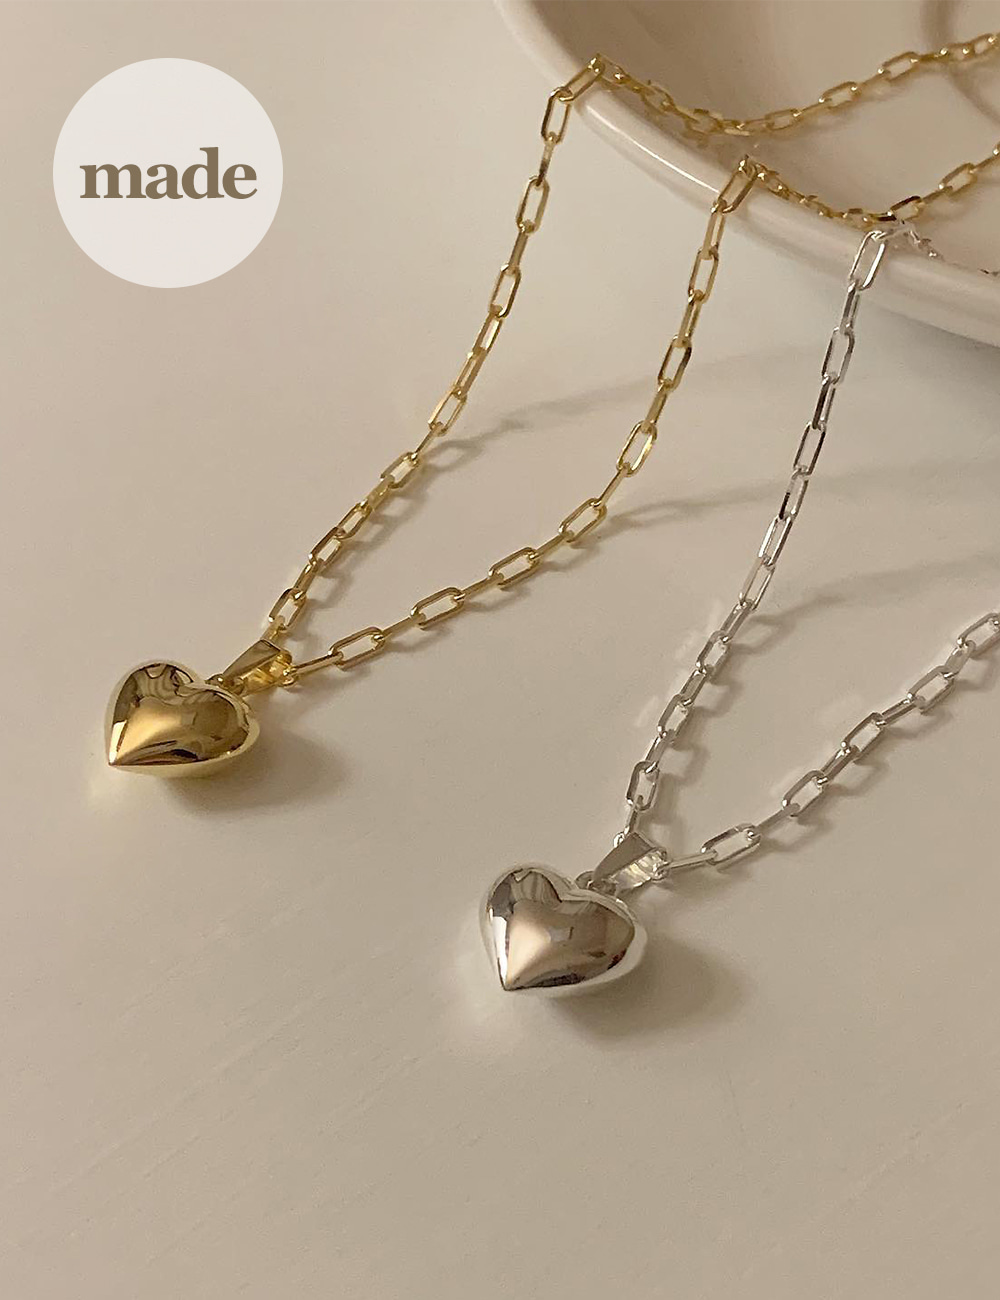 (silver 92.5) Heart chain necklace / gleamme made